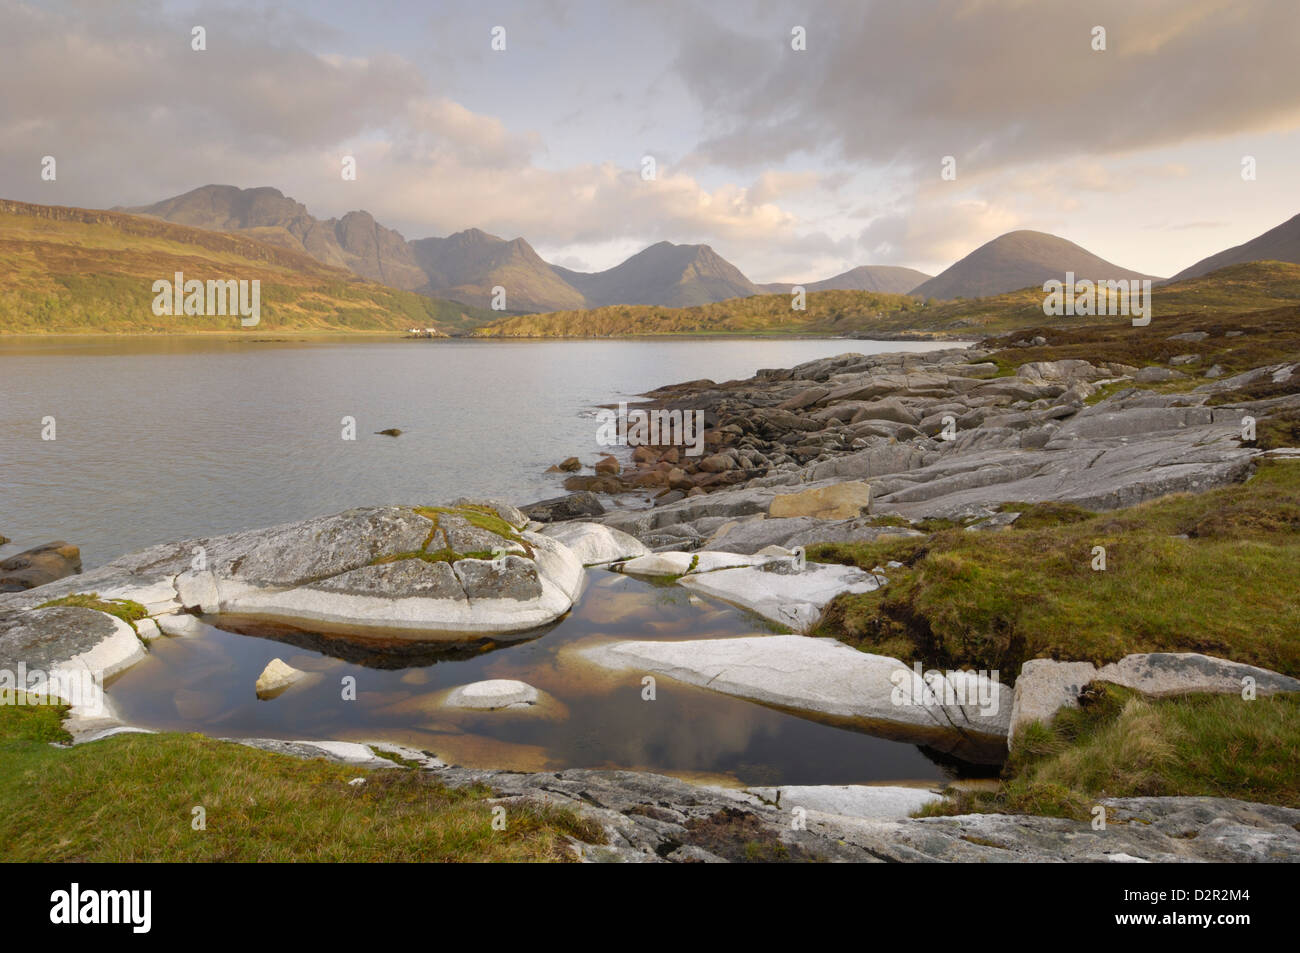 Cullin Mountains from Loch Slapin, Isle of Skye, Inner Hebrides, Scotland, United Kingdom, Europe - Stock Image